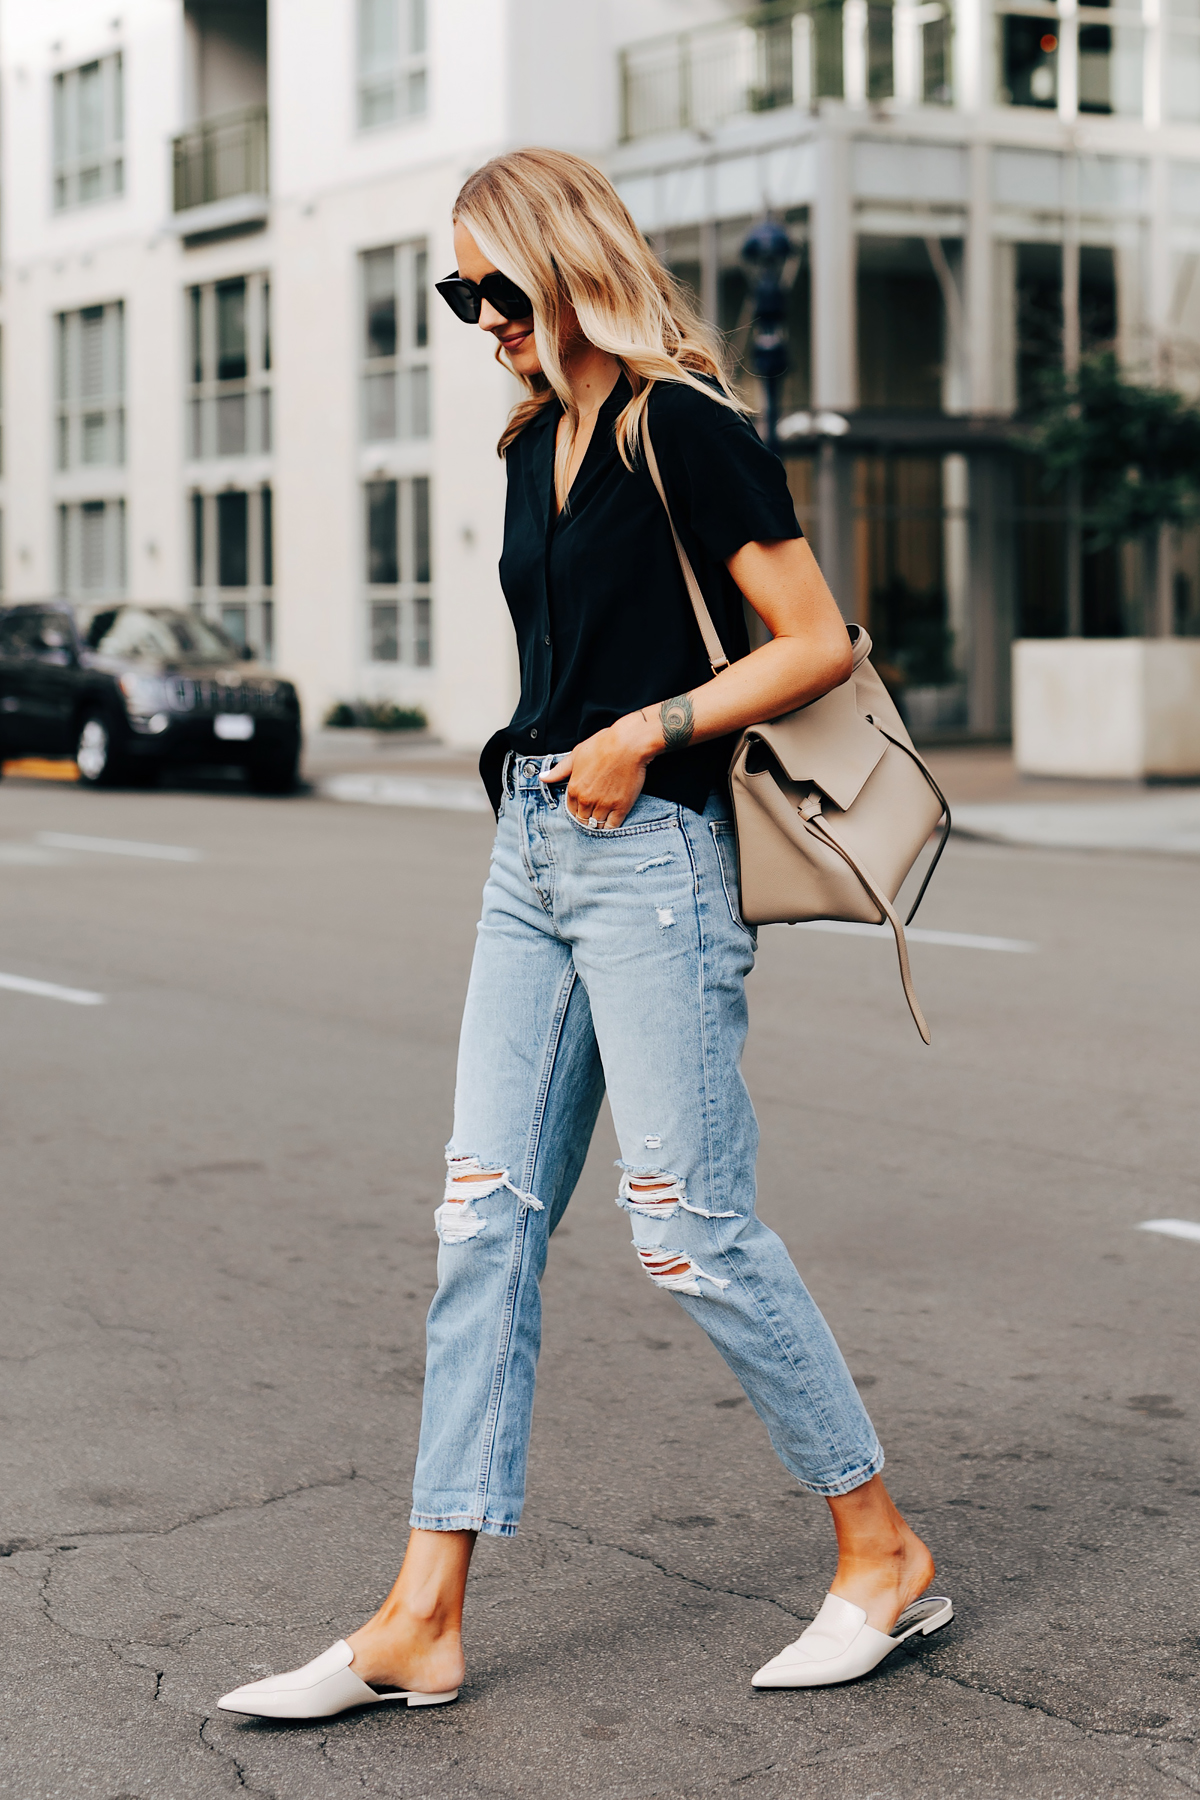 bdd3ca0fc52 Fashion Jackson Wearing Everlane Short Sleeve Black Top Everlane Ripped  Boyfriend Jeans Everlane White Mules Celine